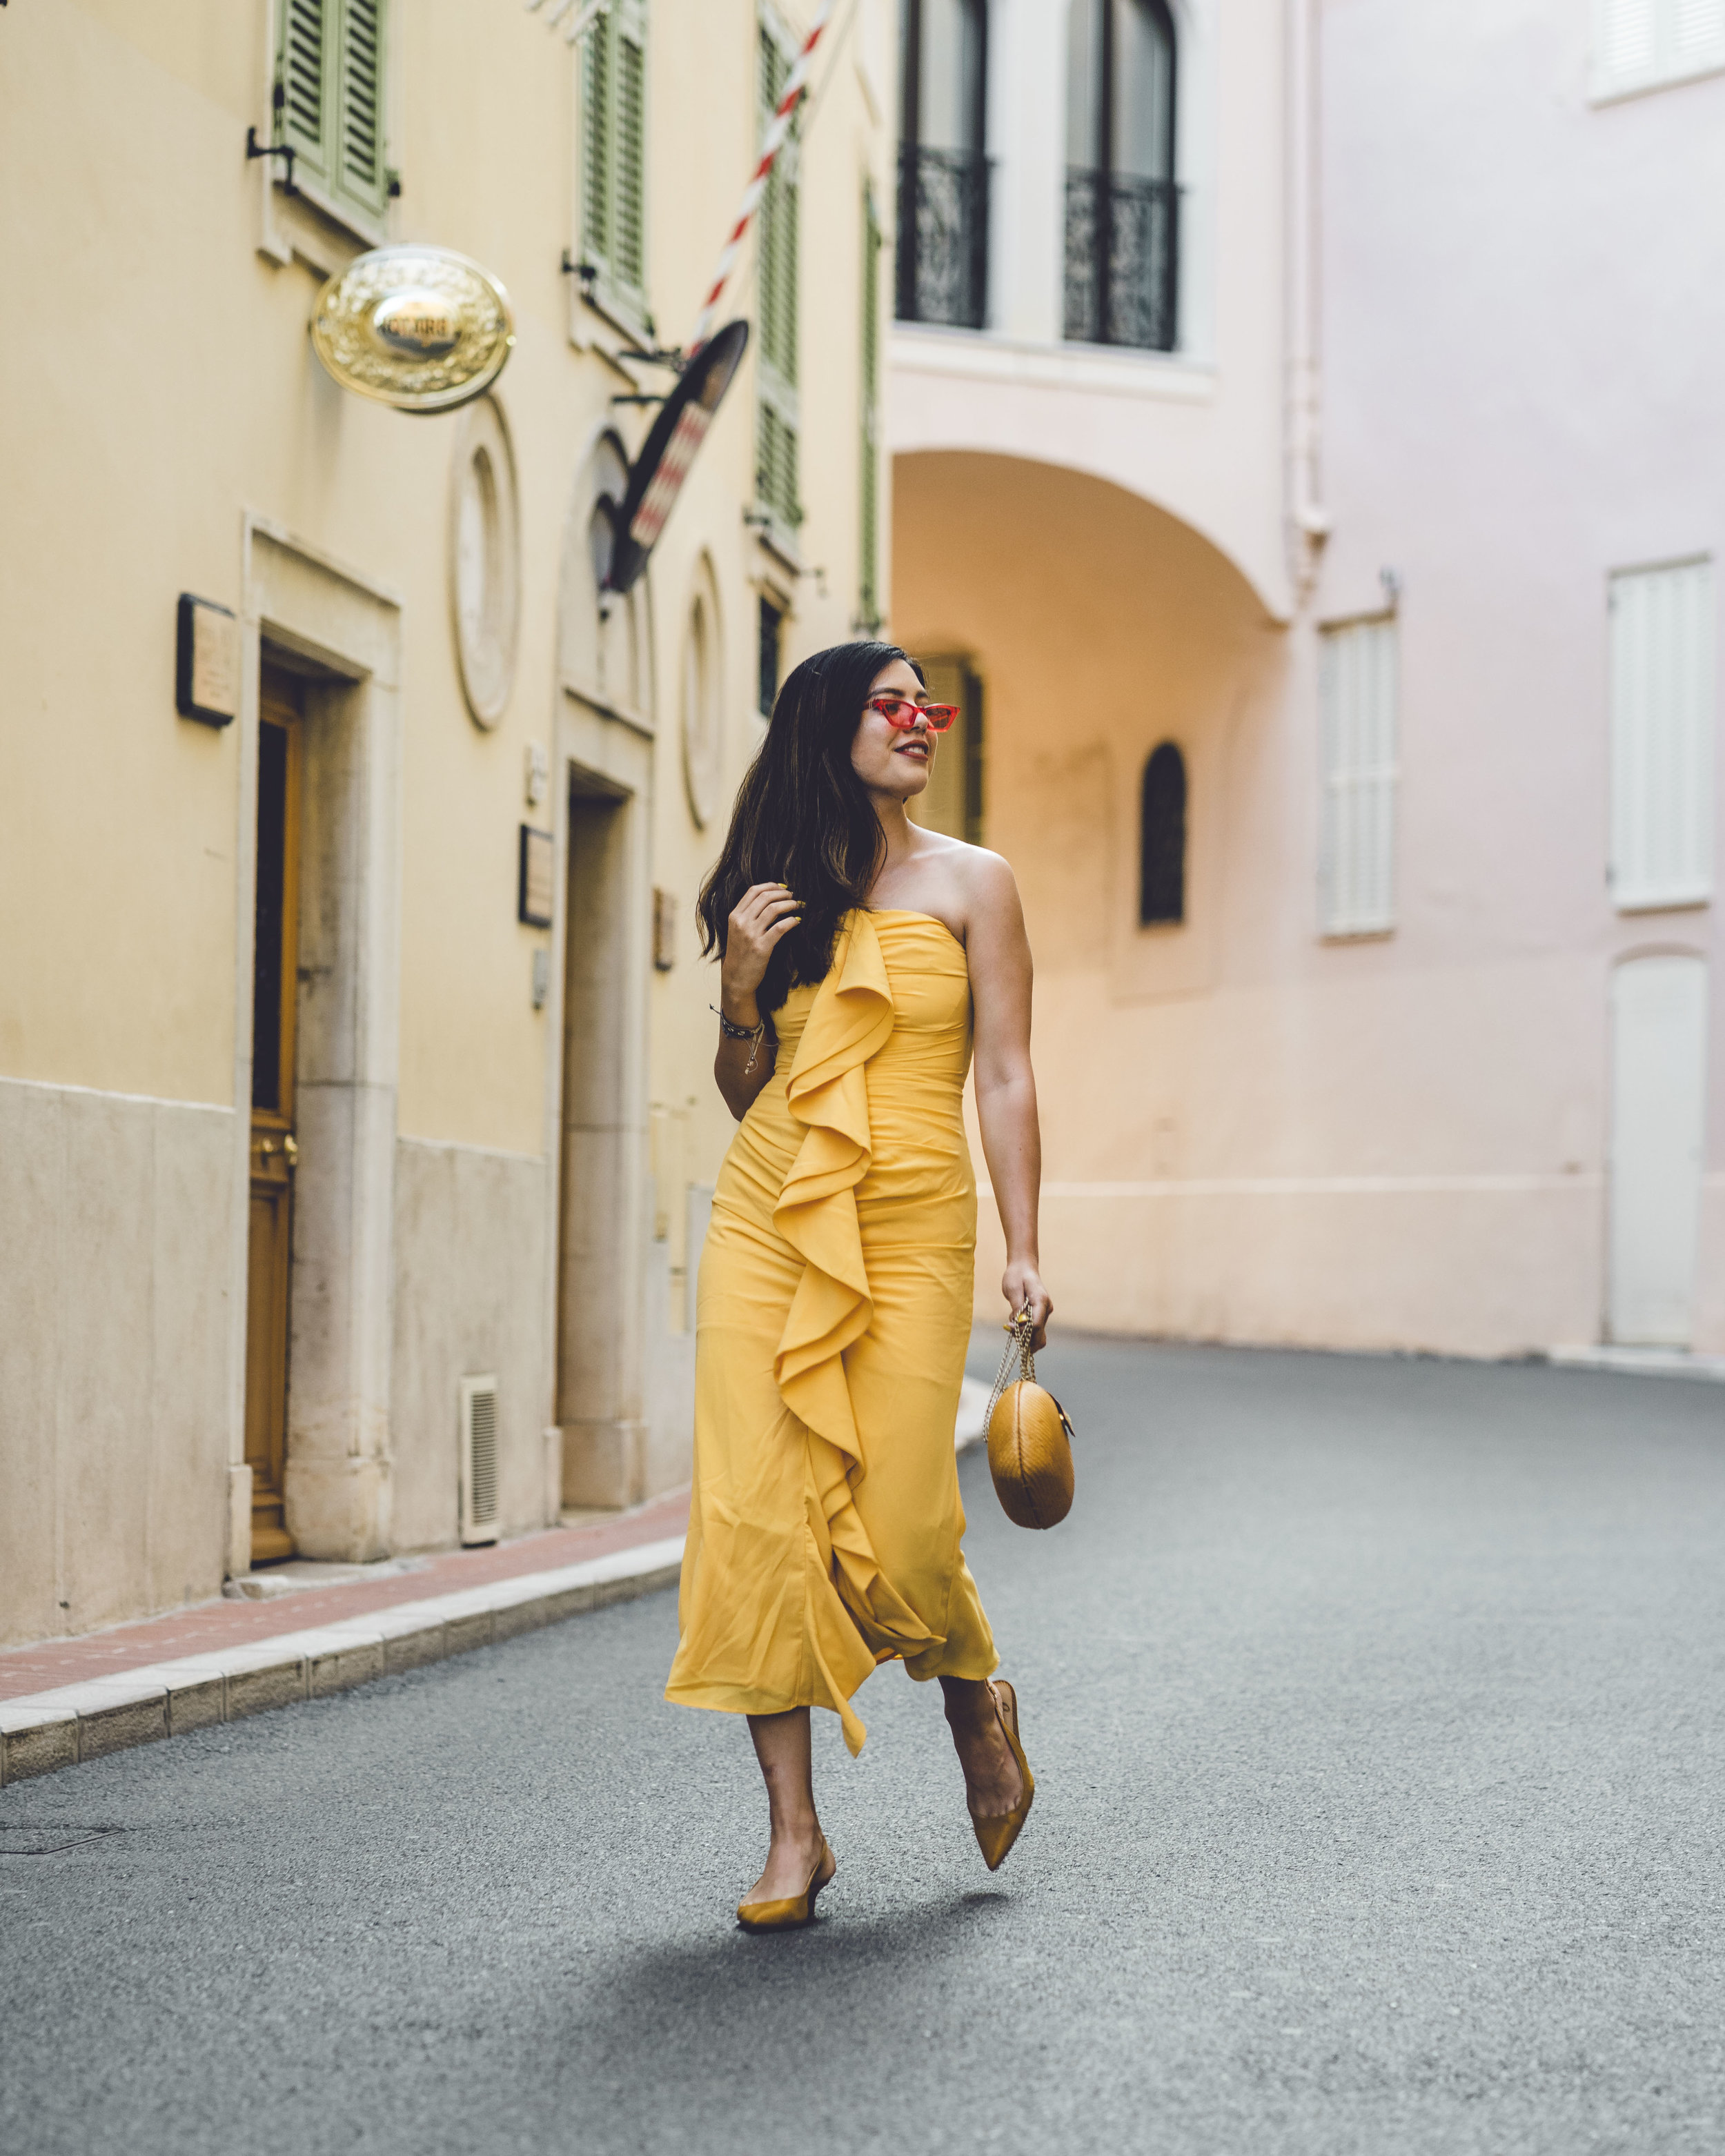 Rachel Off Duty: What to Wear on a Summer Vacation in Italy (June - August): Packing List